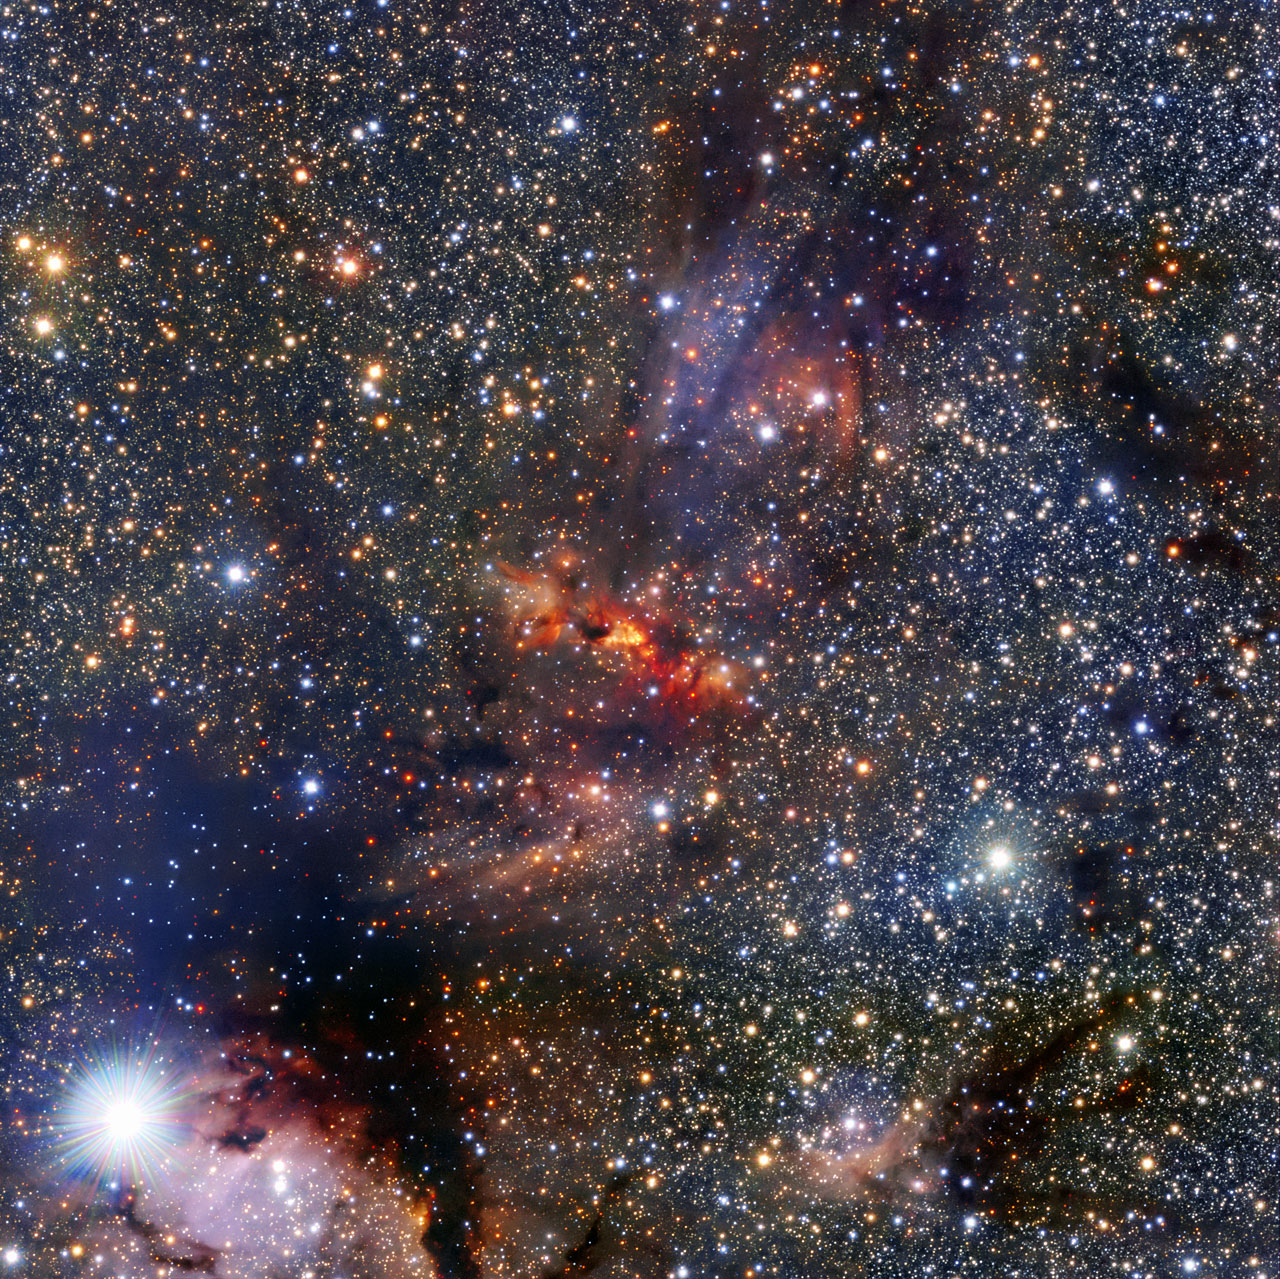 This image shows a region of the Milky Way that lies within the constellation of Scorpius, close to the central plane of the galaxy. The region hosts a dense cloud of dust and gas associated with the molecular cloudIRAS 16562-3959, clearly visible as an orange smudge among the rich pool of stars at the centre of the image. Clouds like these are breeding grounds for new stars. In the centre of this cloud the bright object known as G345.4938+01.4677 can just be seen beyond the veil of gas and dust. This is a very young star in the process of forming as the cloud collapses under gravity. The young star is very bright and heavy — roughly 15 times more massive than the Sun — and featured in a recent Atacama Large Millimeter/submillimeter Array (ALMA) result. The team of astronomers made surprising discoveries within G345.4938+01.4677 — there is a large disc of gas and dust around the forming star as well as a stream of material flowing out from it. Theories predict that neither such a stream, nor the disc itself, are likely to exist around stars like G345.4938+01.4677 because the strong radiation from such massive new stars is thought to push material away. This image was made using the Visible and Infrared Survey Telescope for Astronomy (VISTA), which is part of ESO's Paranal Observatory in the Atacama Desert of Chile. It is the world's largest survey telescope, with a main mirror that measures over four metres across. The colour image was produced by the VVV survey, which is one of six large public surveys that are devoted to mapping the southern sky. The bright star in the bottom left of the image is known as HD 153220.